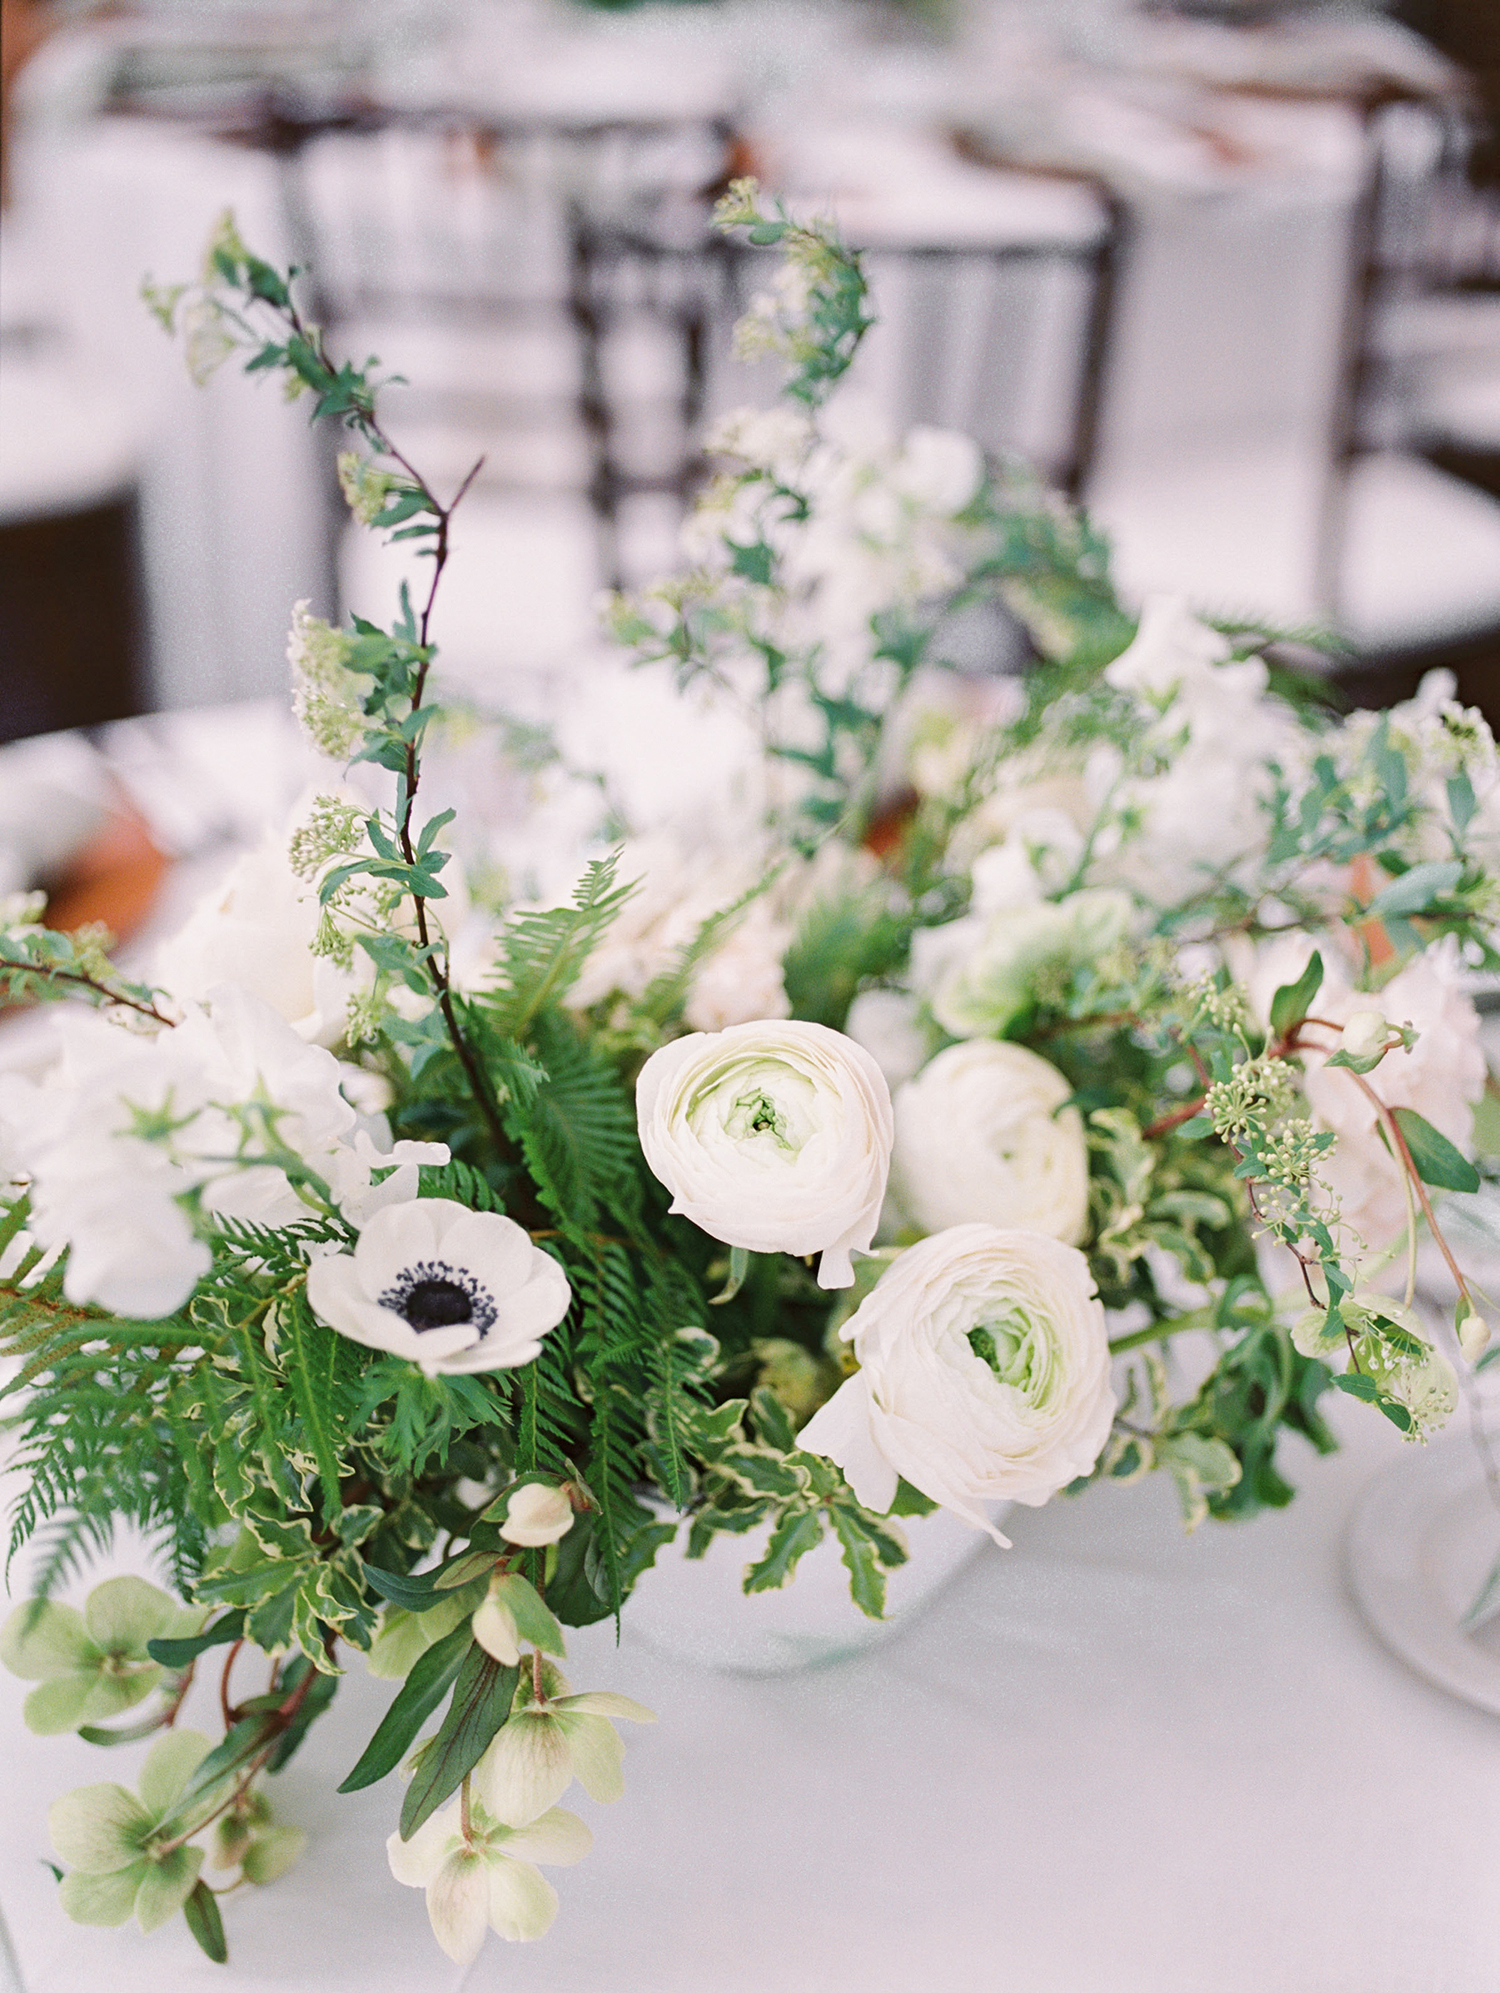 lauren aaron wedding white floral centerpiece